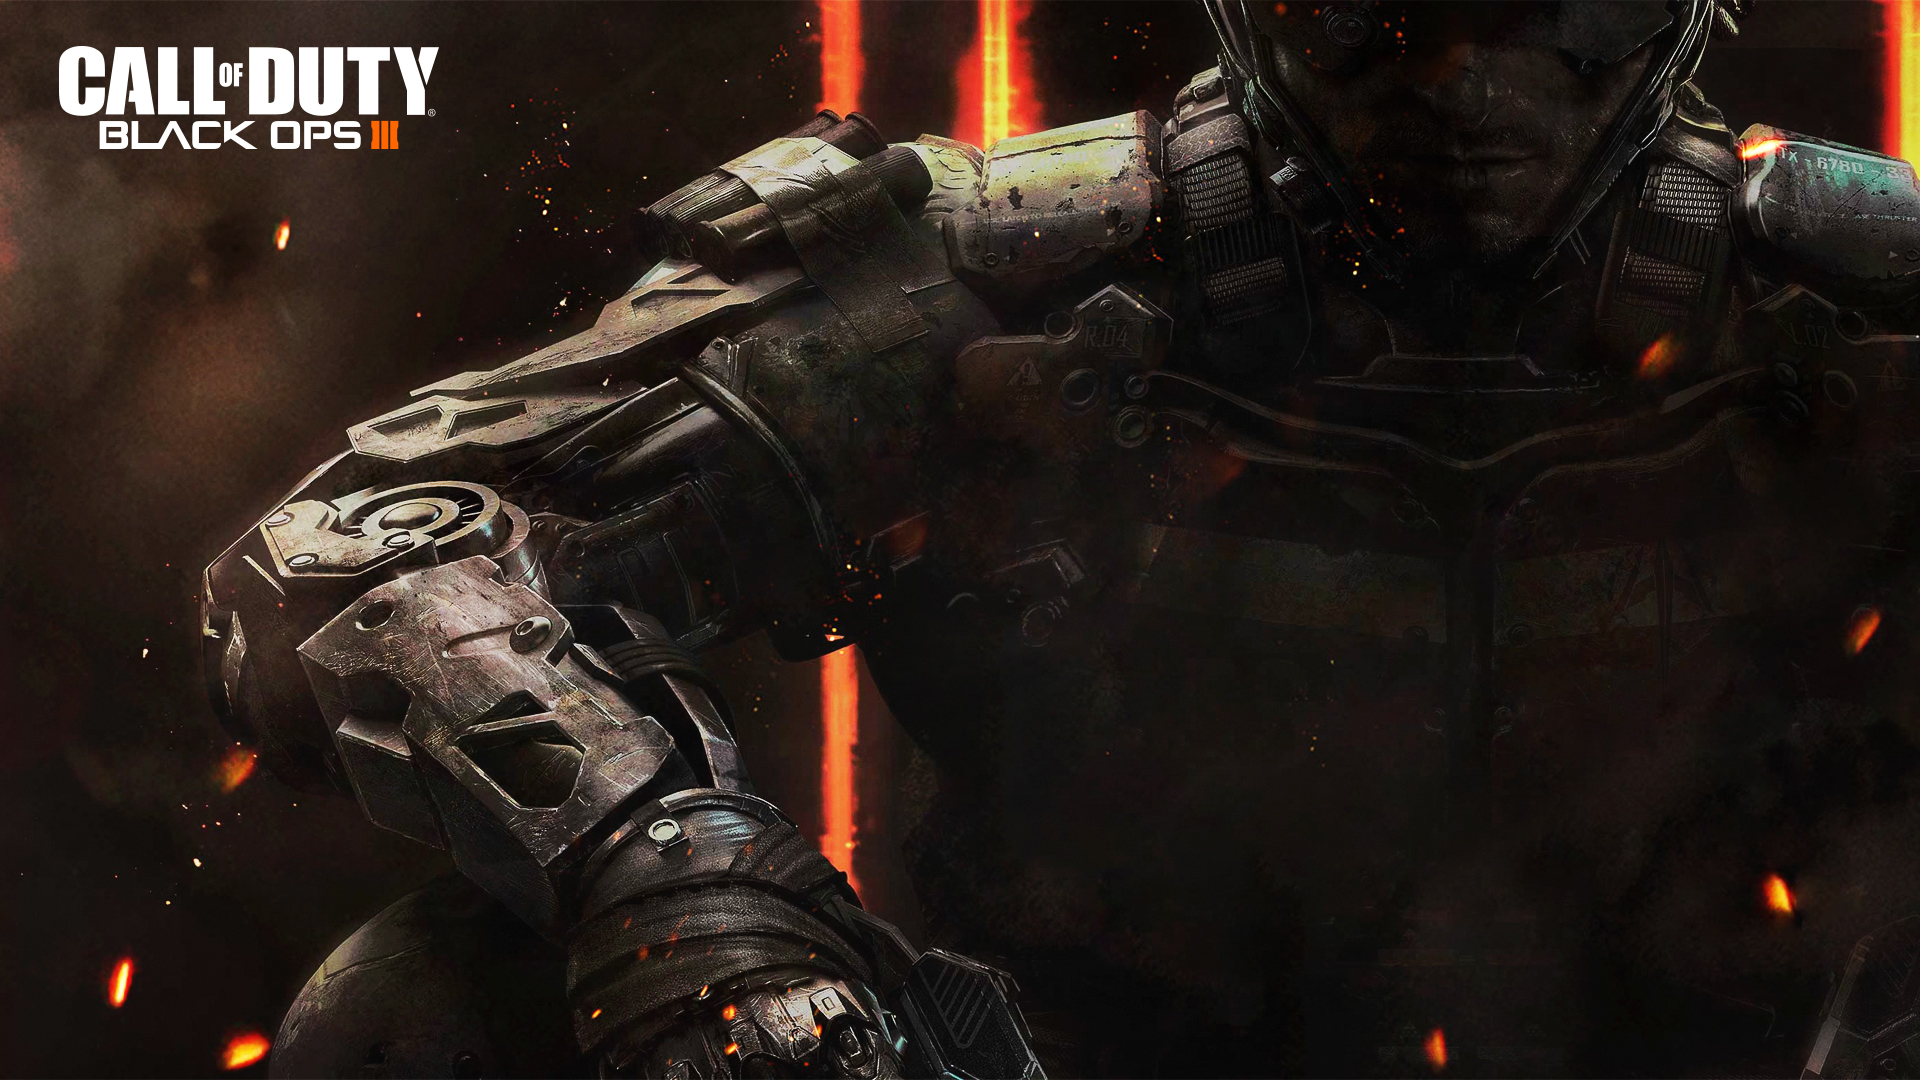 49 Black Ops 3 Zombies Wallpaper On Wallpapersafari